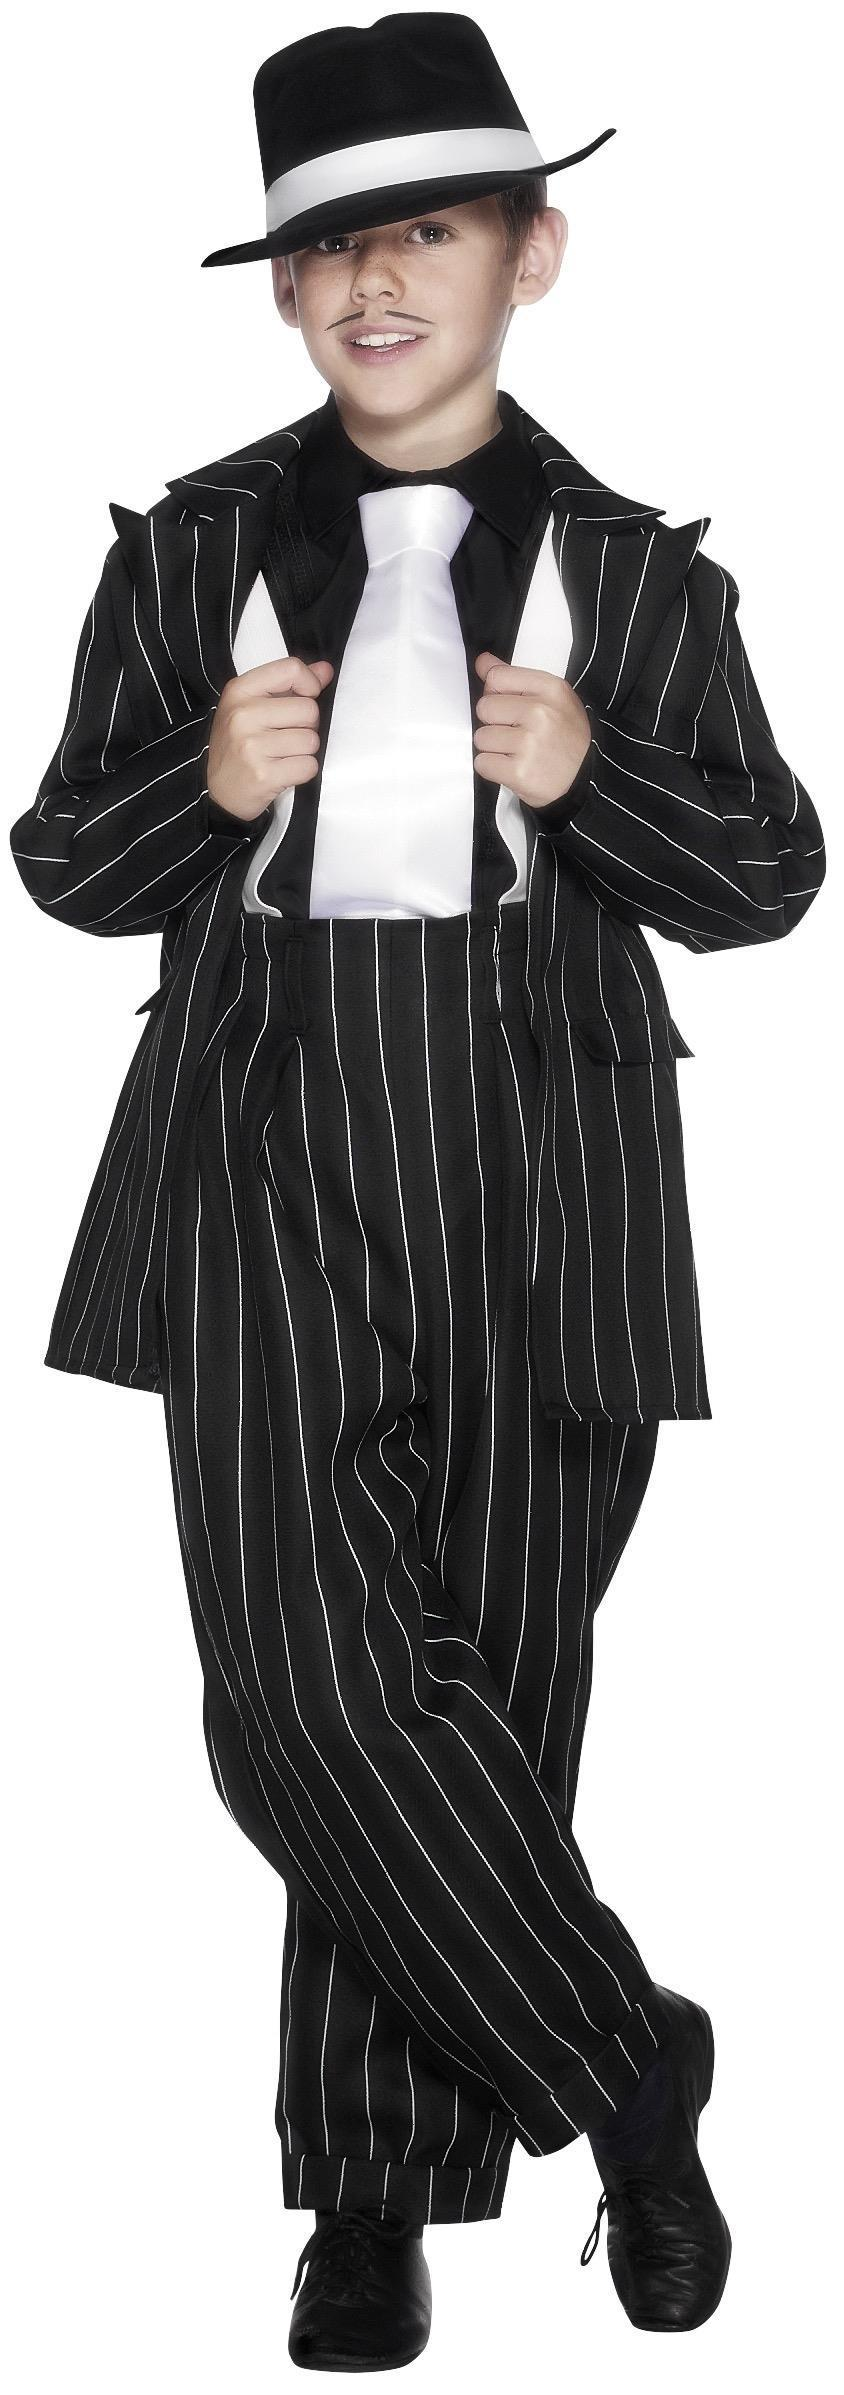 Kids Gangster Zoot Suit Costume